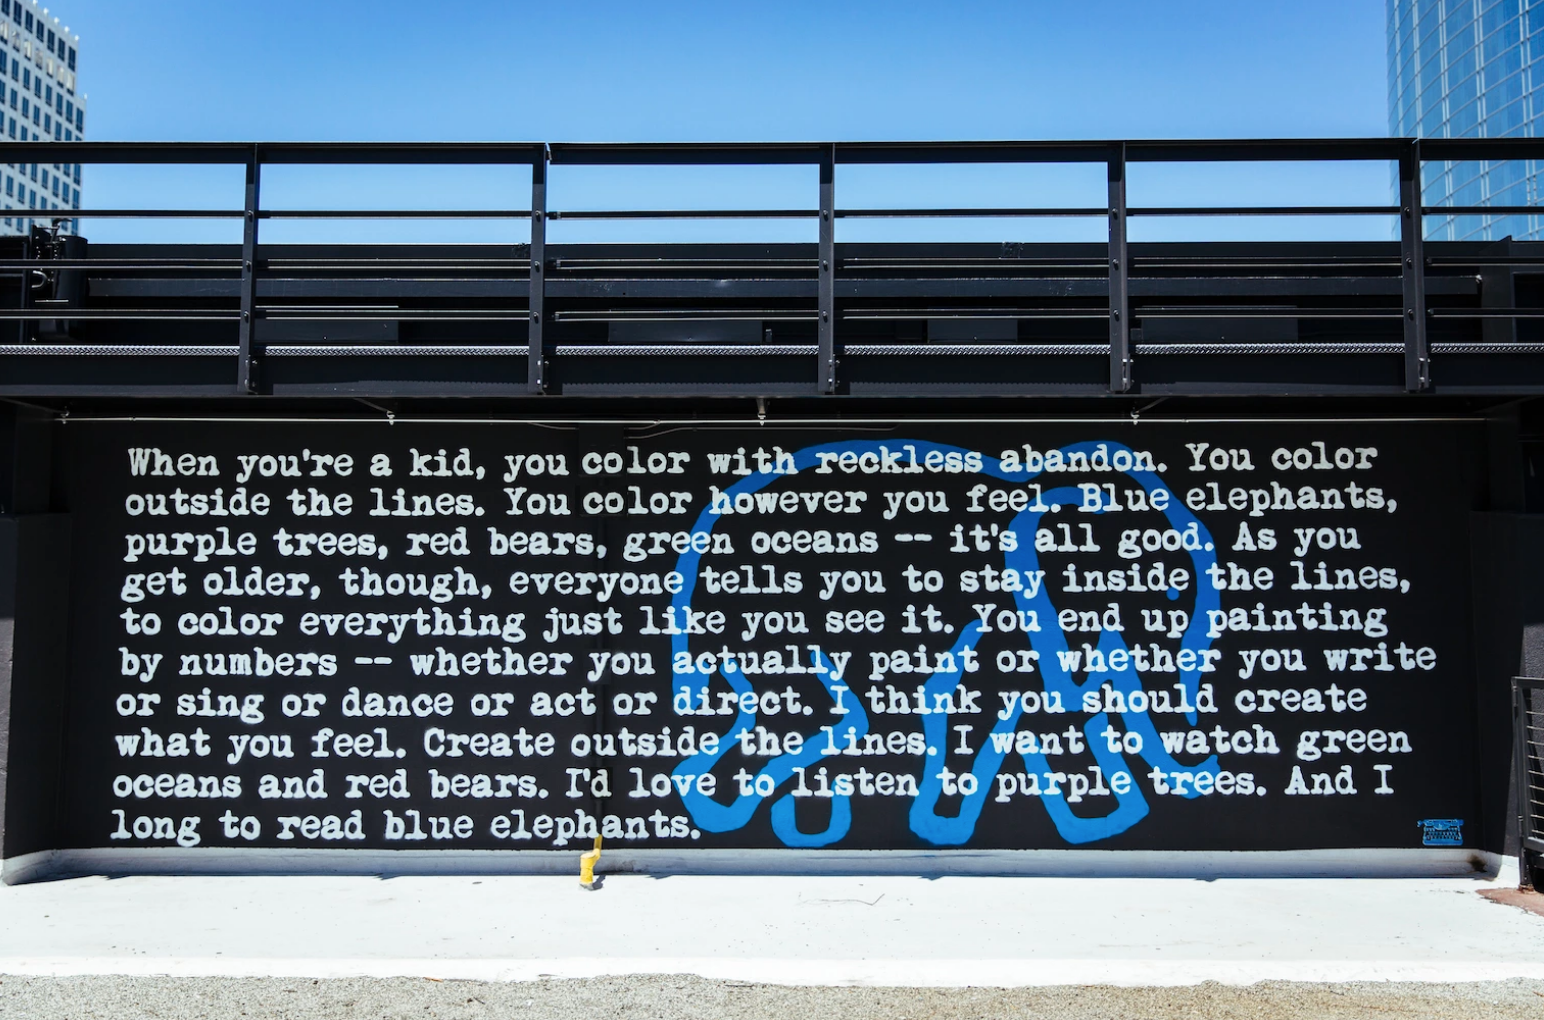 Blue Elephants by WRDSMTH at The Bloc Downtown LA, as seen on Wescover.